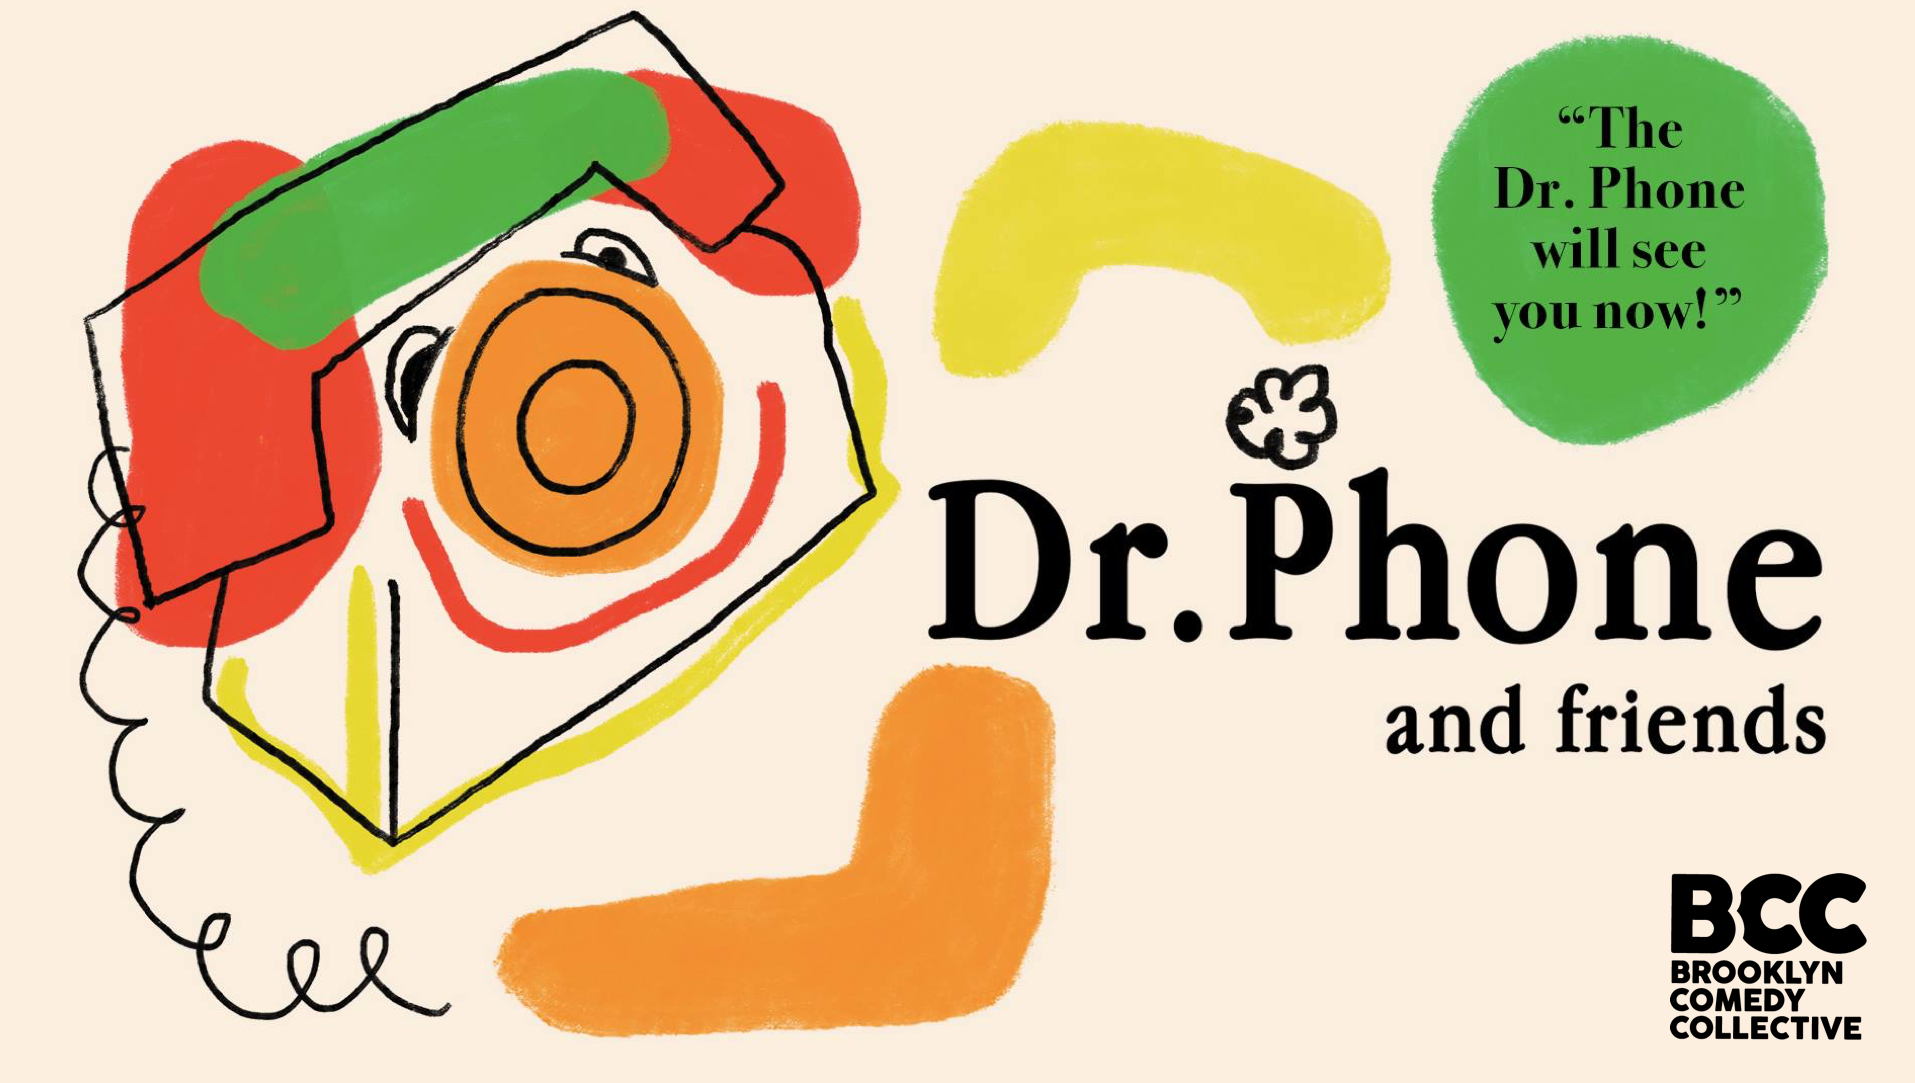 Dr Phone BCC event image.png